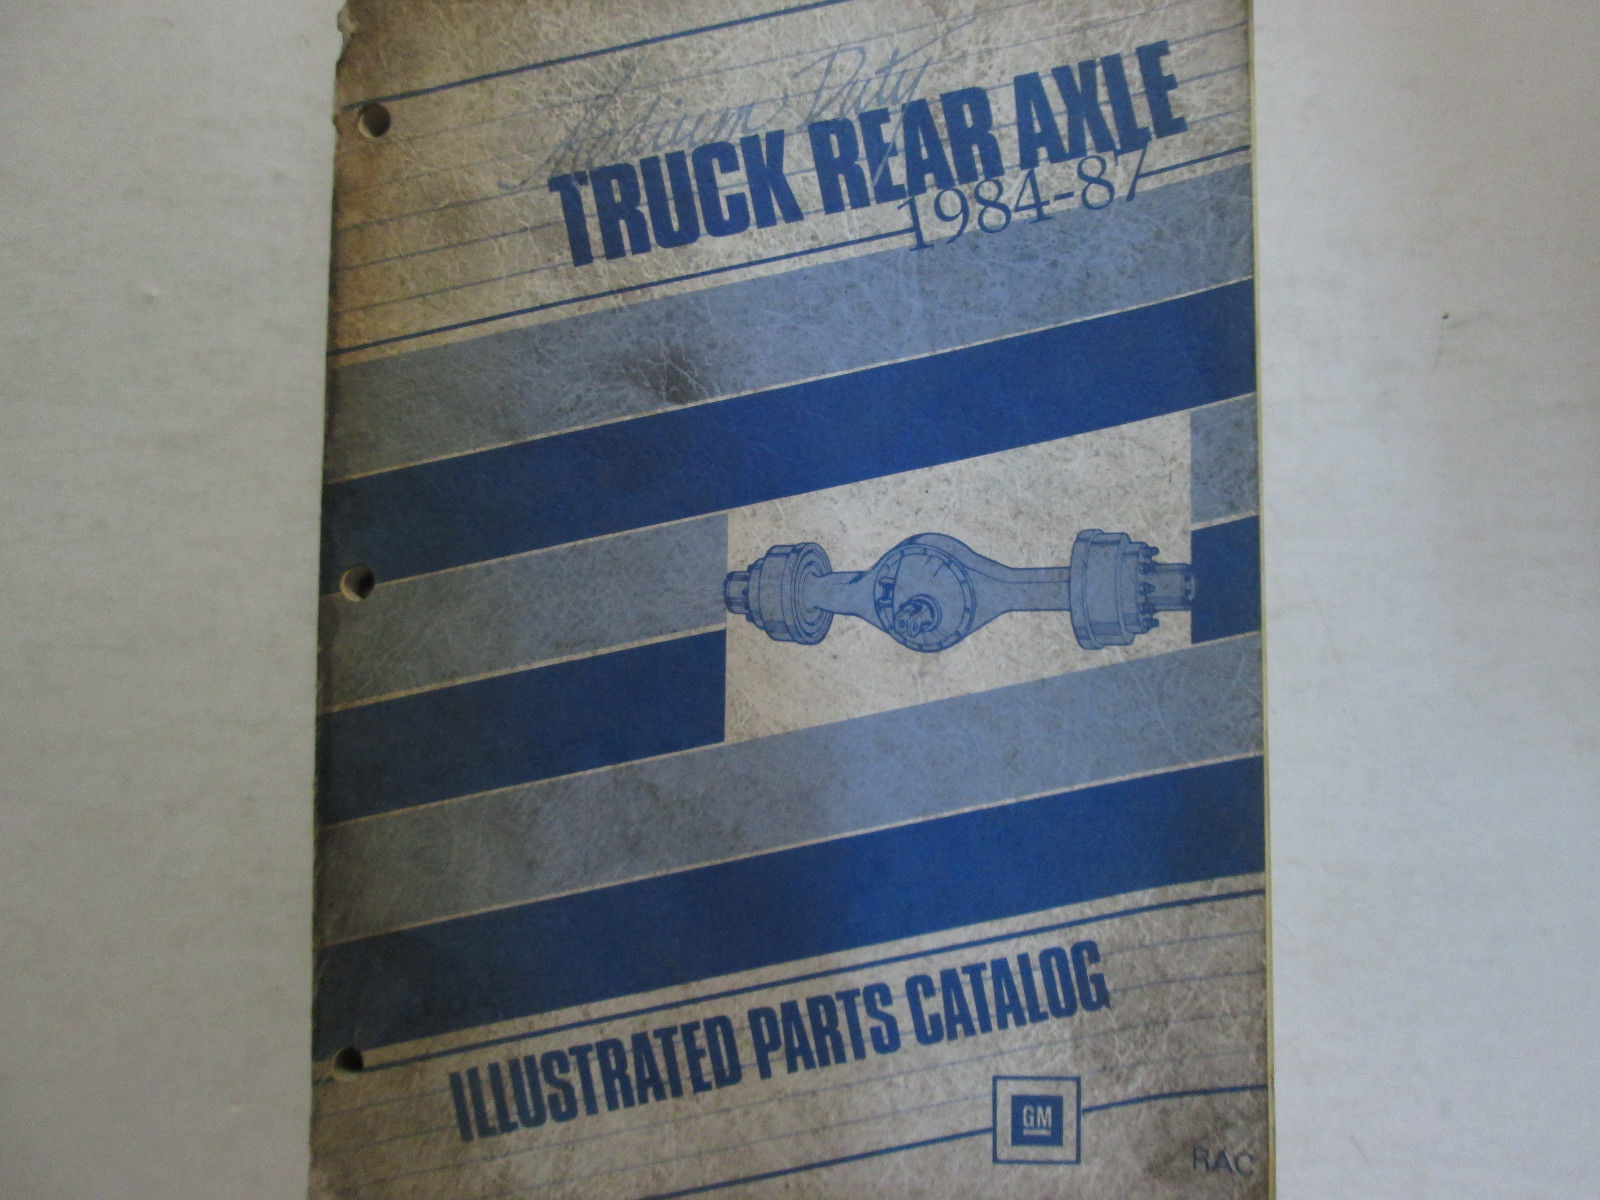 1984 1985 1986 1987 GM TRUCK MEDIUM DUTY REAR AXLE PARTS Catalog Manual OEM Book